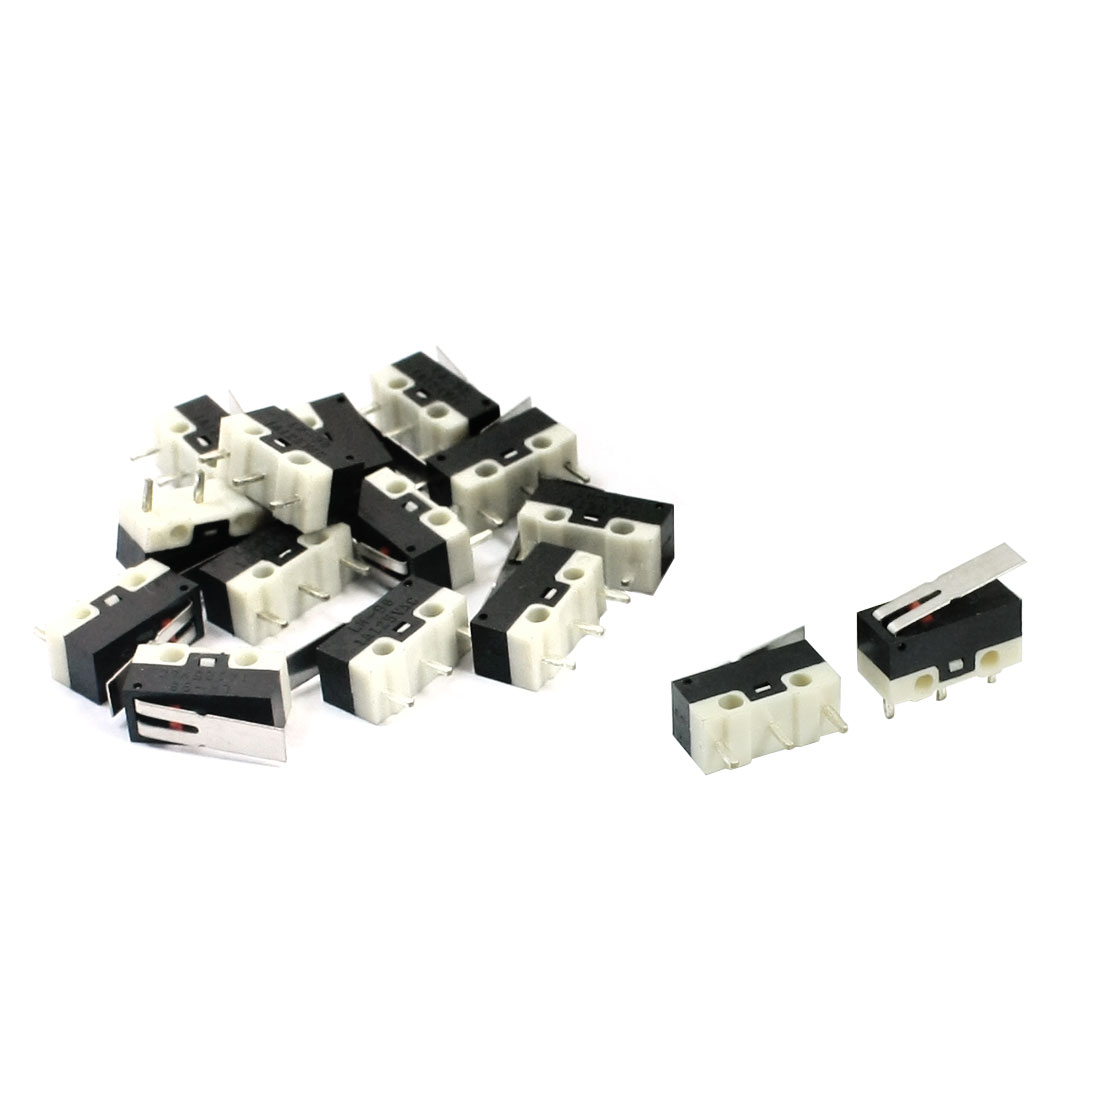 15Pcs AC125V 1A 3 Terminals SPDT Straight Hinge Lever Momentary Miniature Micro Switch